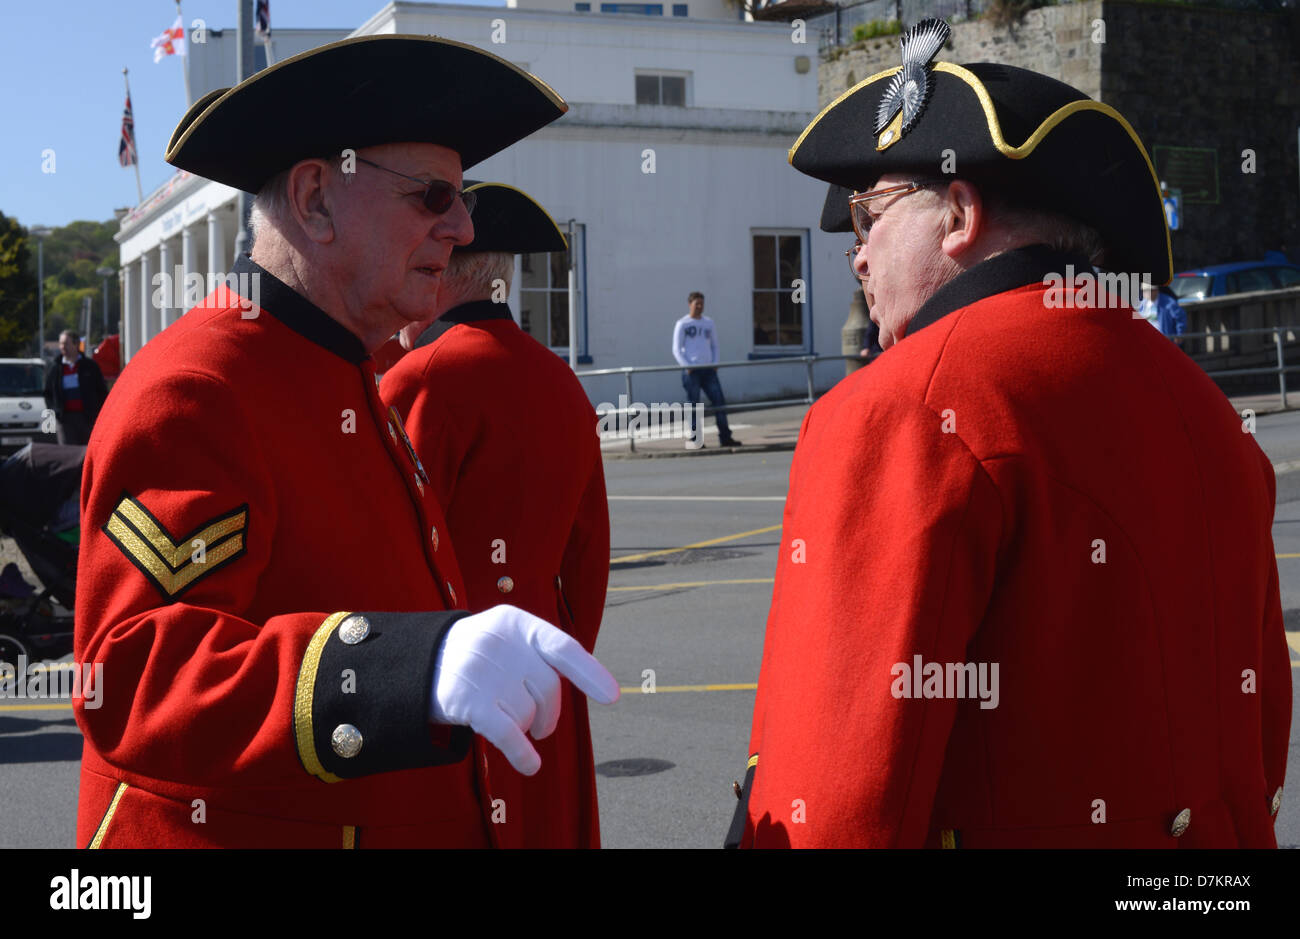 9th May 2013. St Peter Port Guernsey. Chelsea Pensioners prepare for the Liberation Day parade - Stock Image